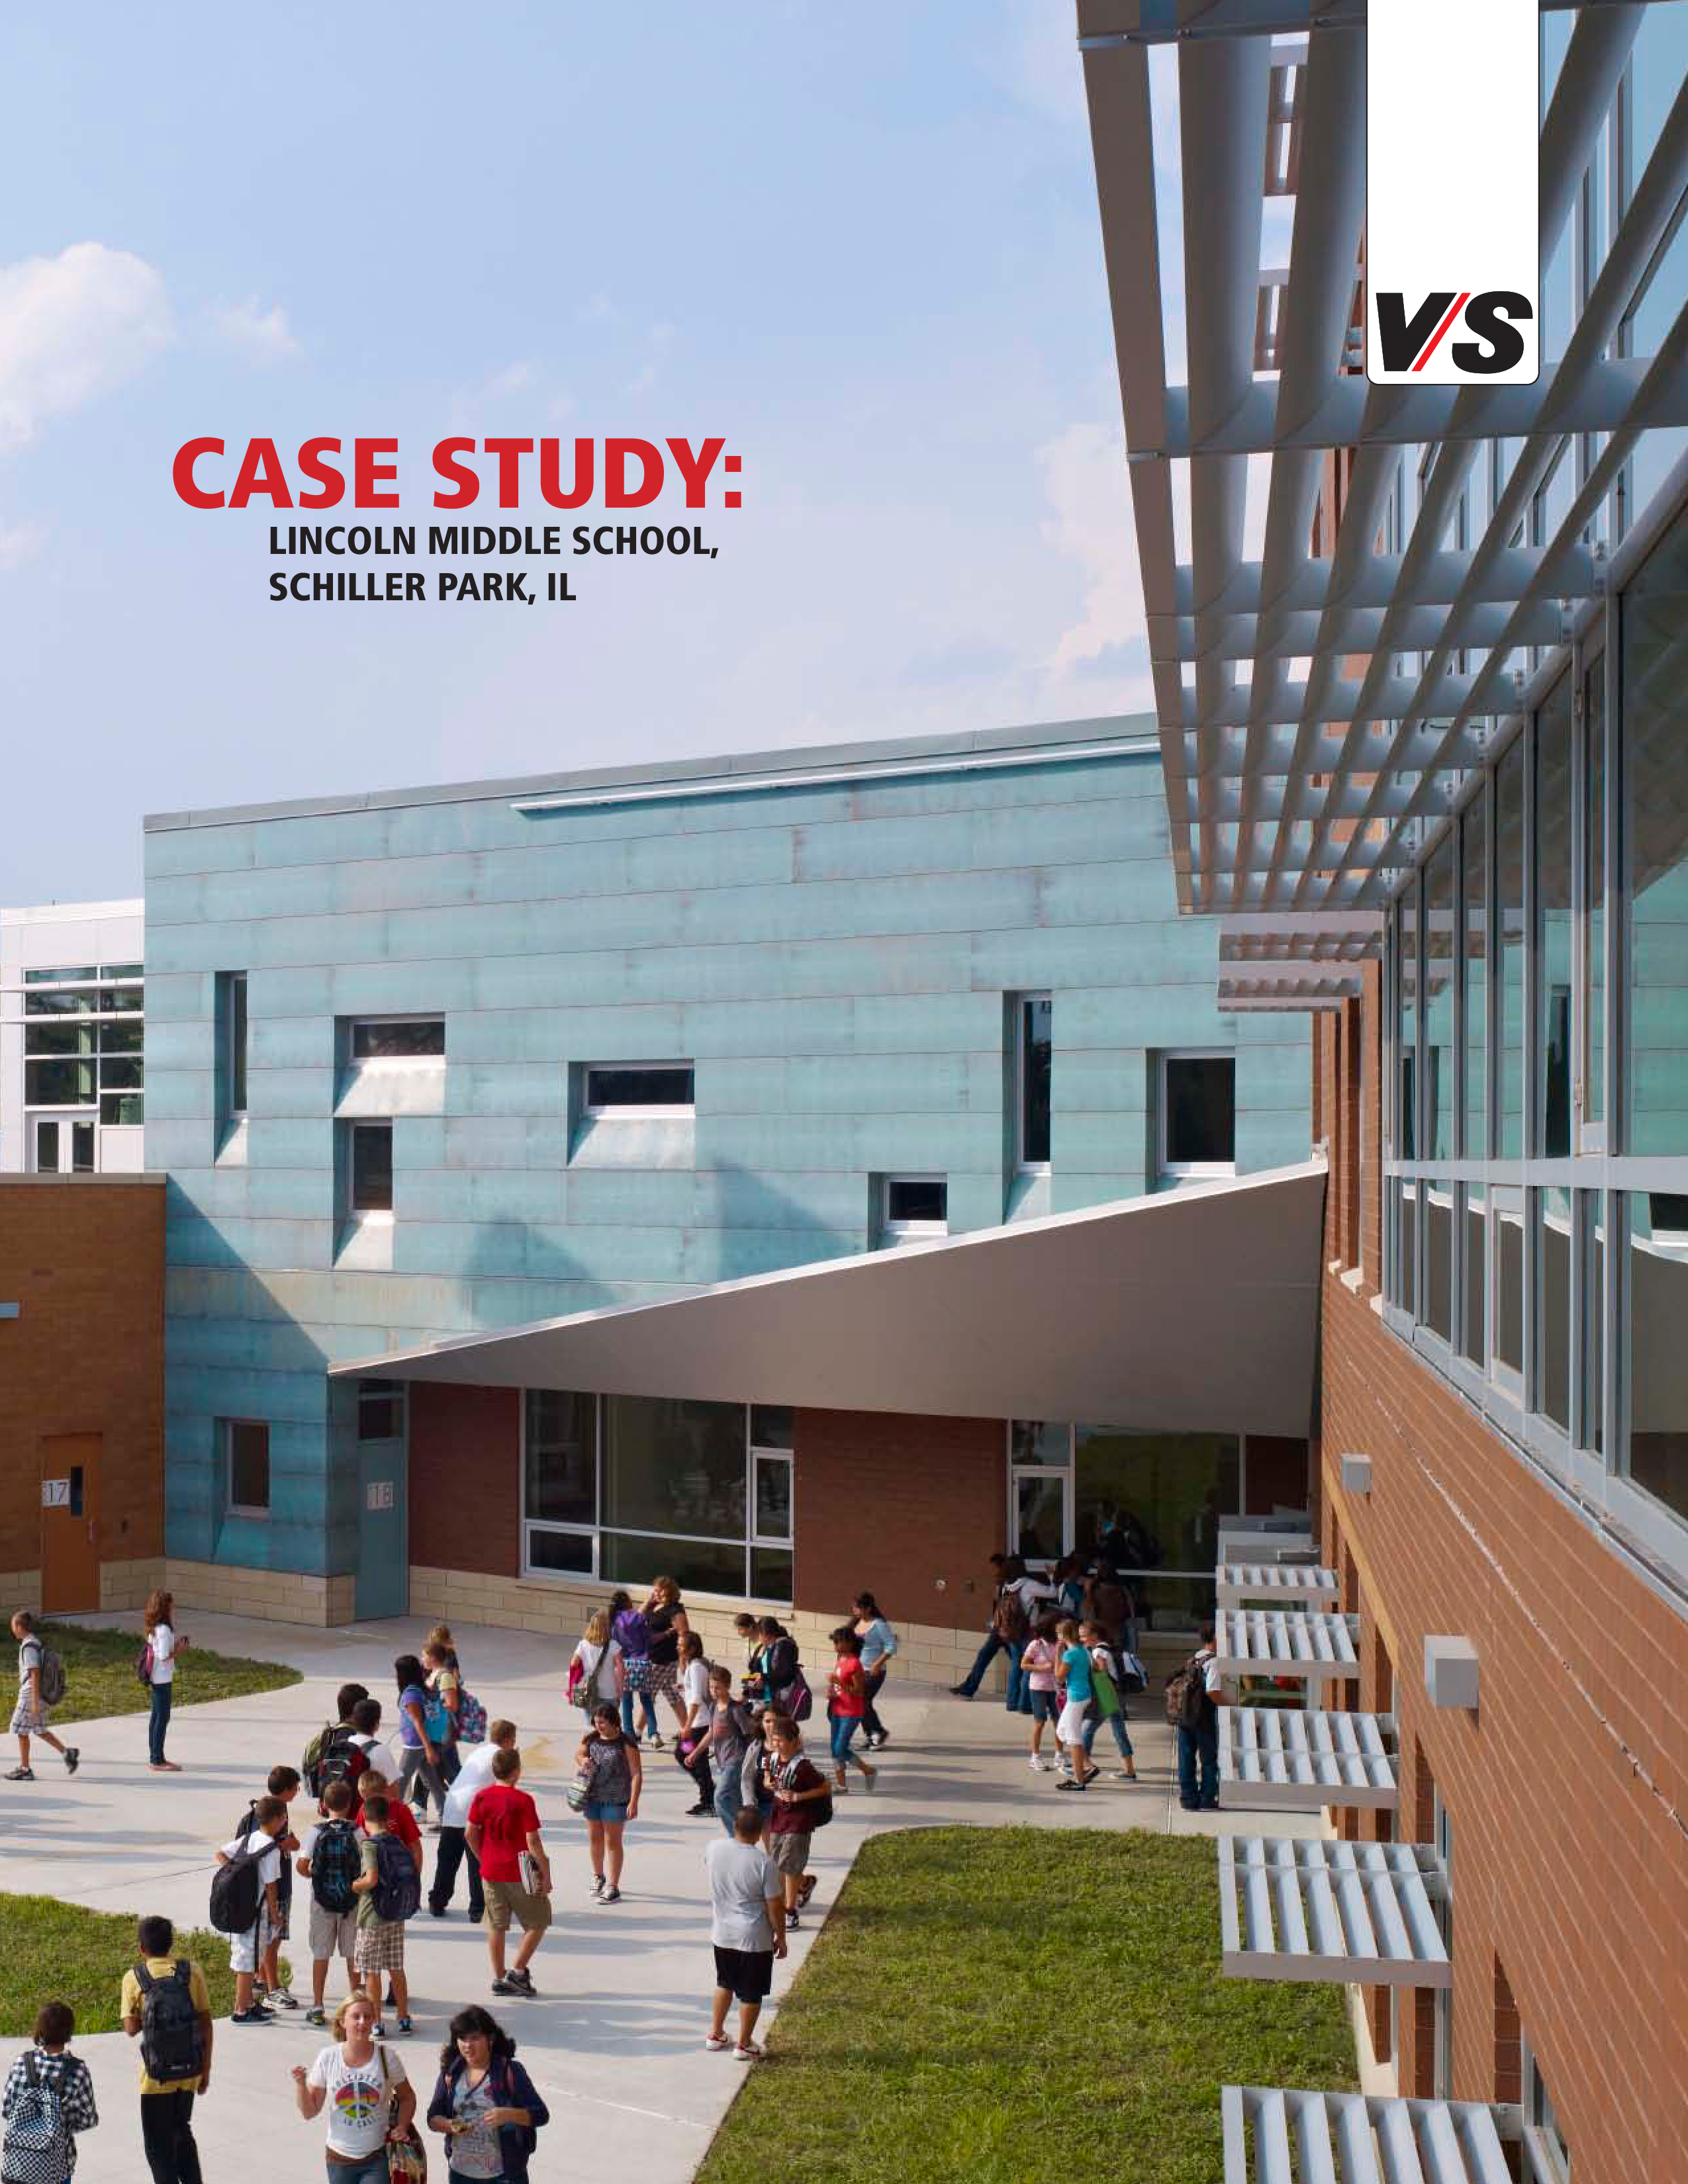 thumbnail of Lincoln Middle School case study